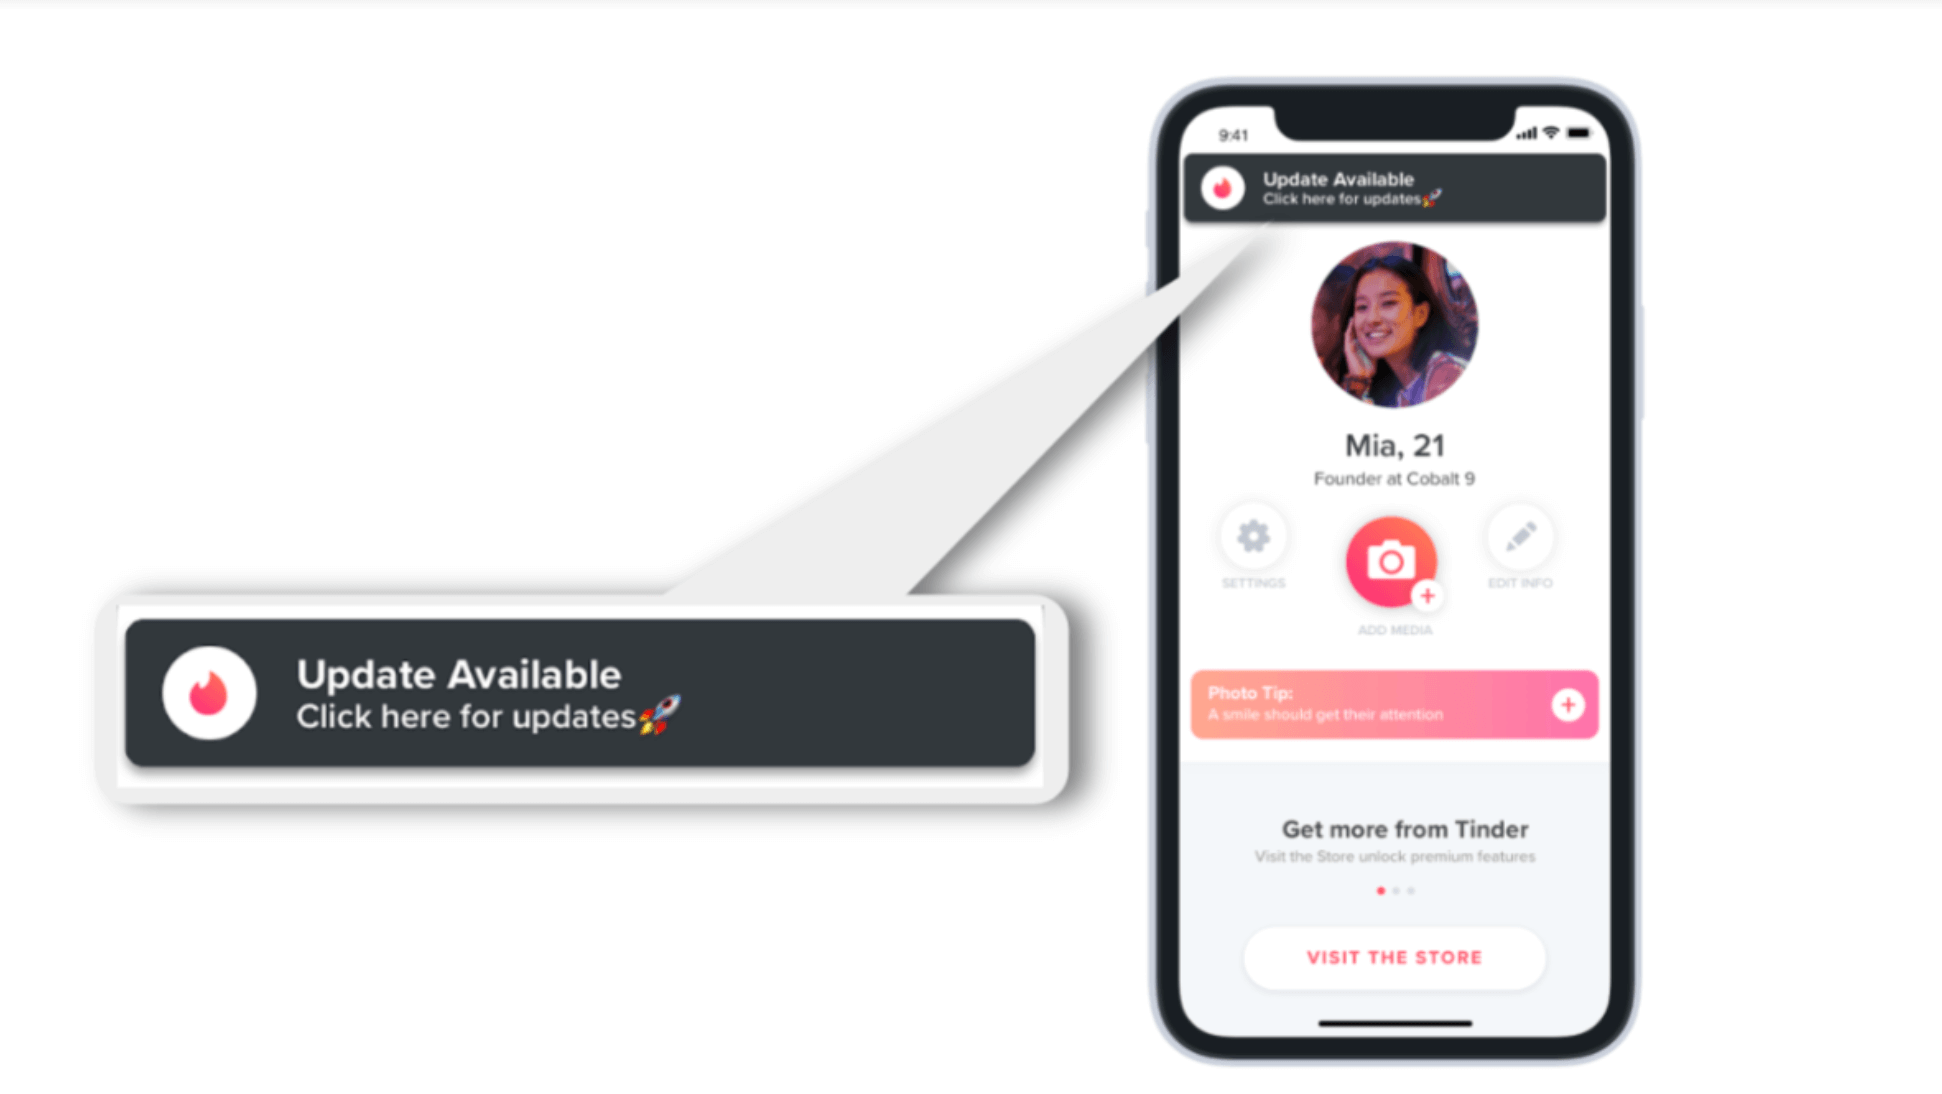 A screenshot of Tinder's webapp 'Update Available' functionality.